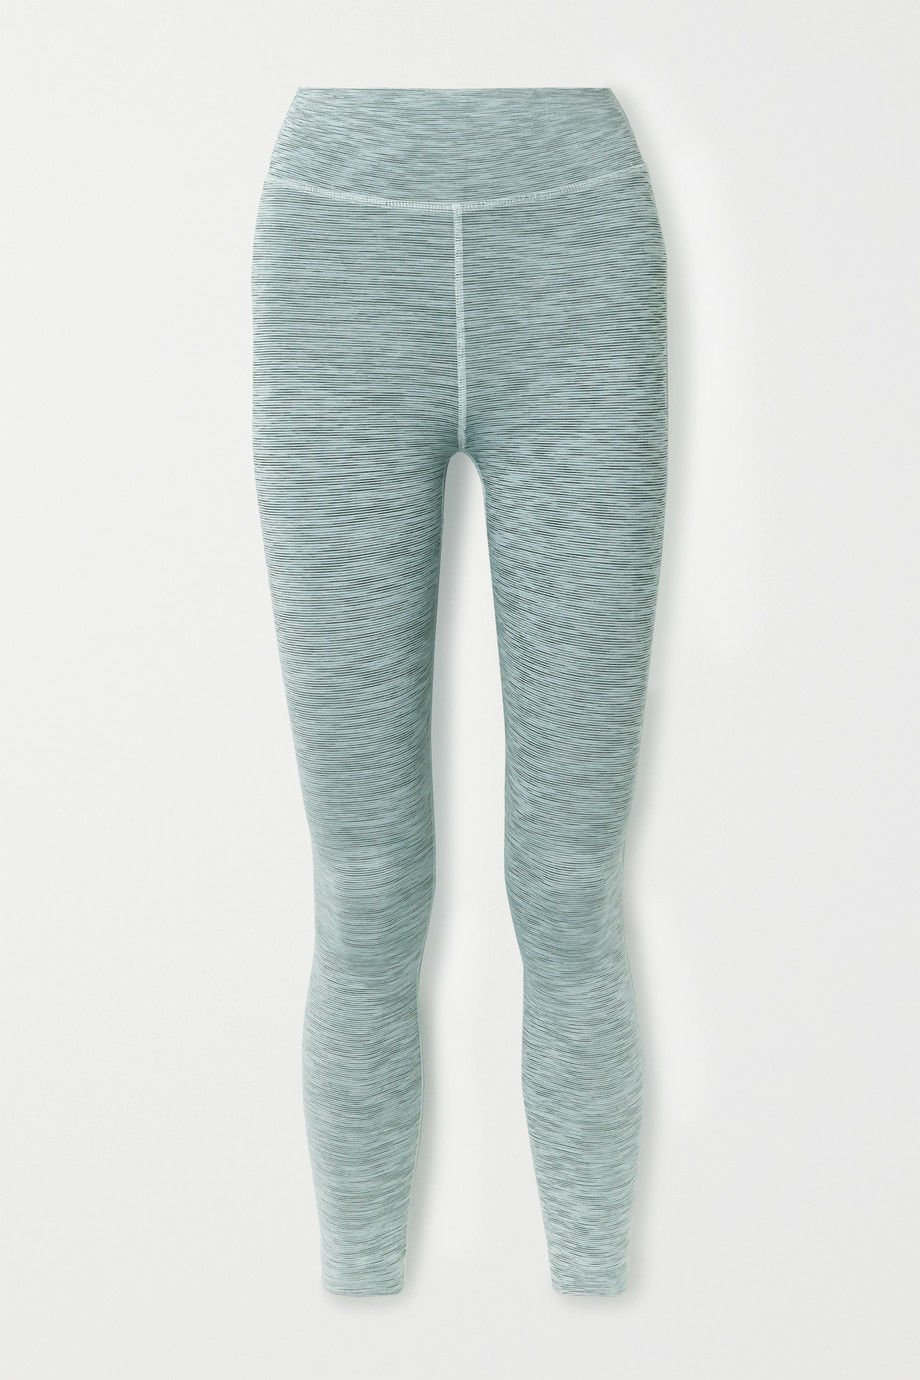 The Upside Ocean Leggings aus Stretch-Material in Space-Dye-Färbung